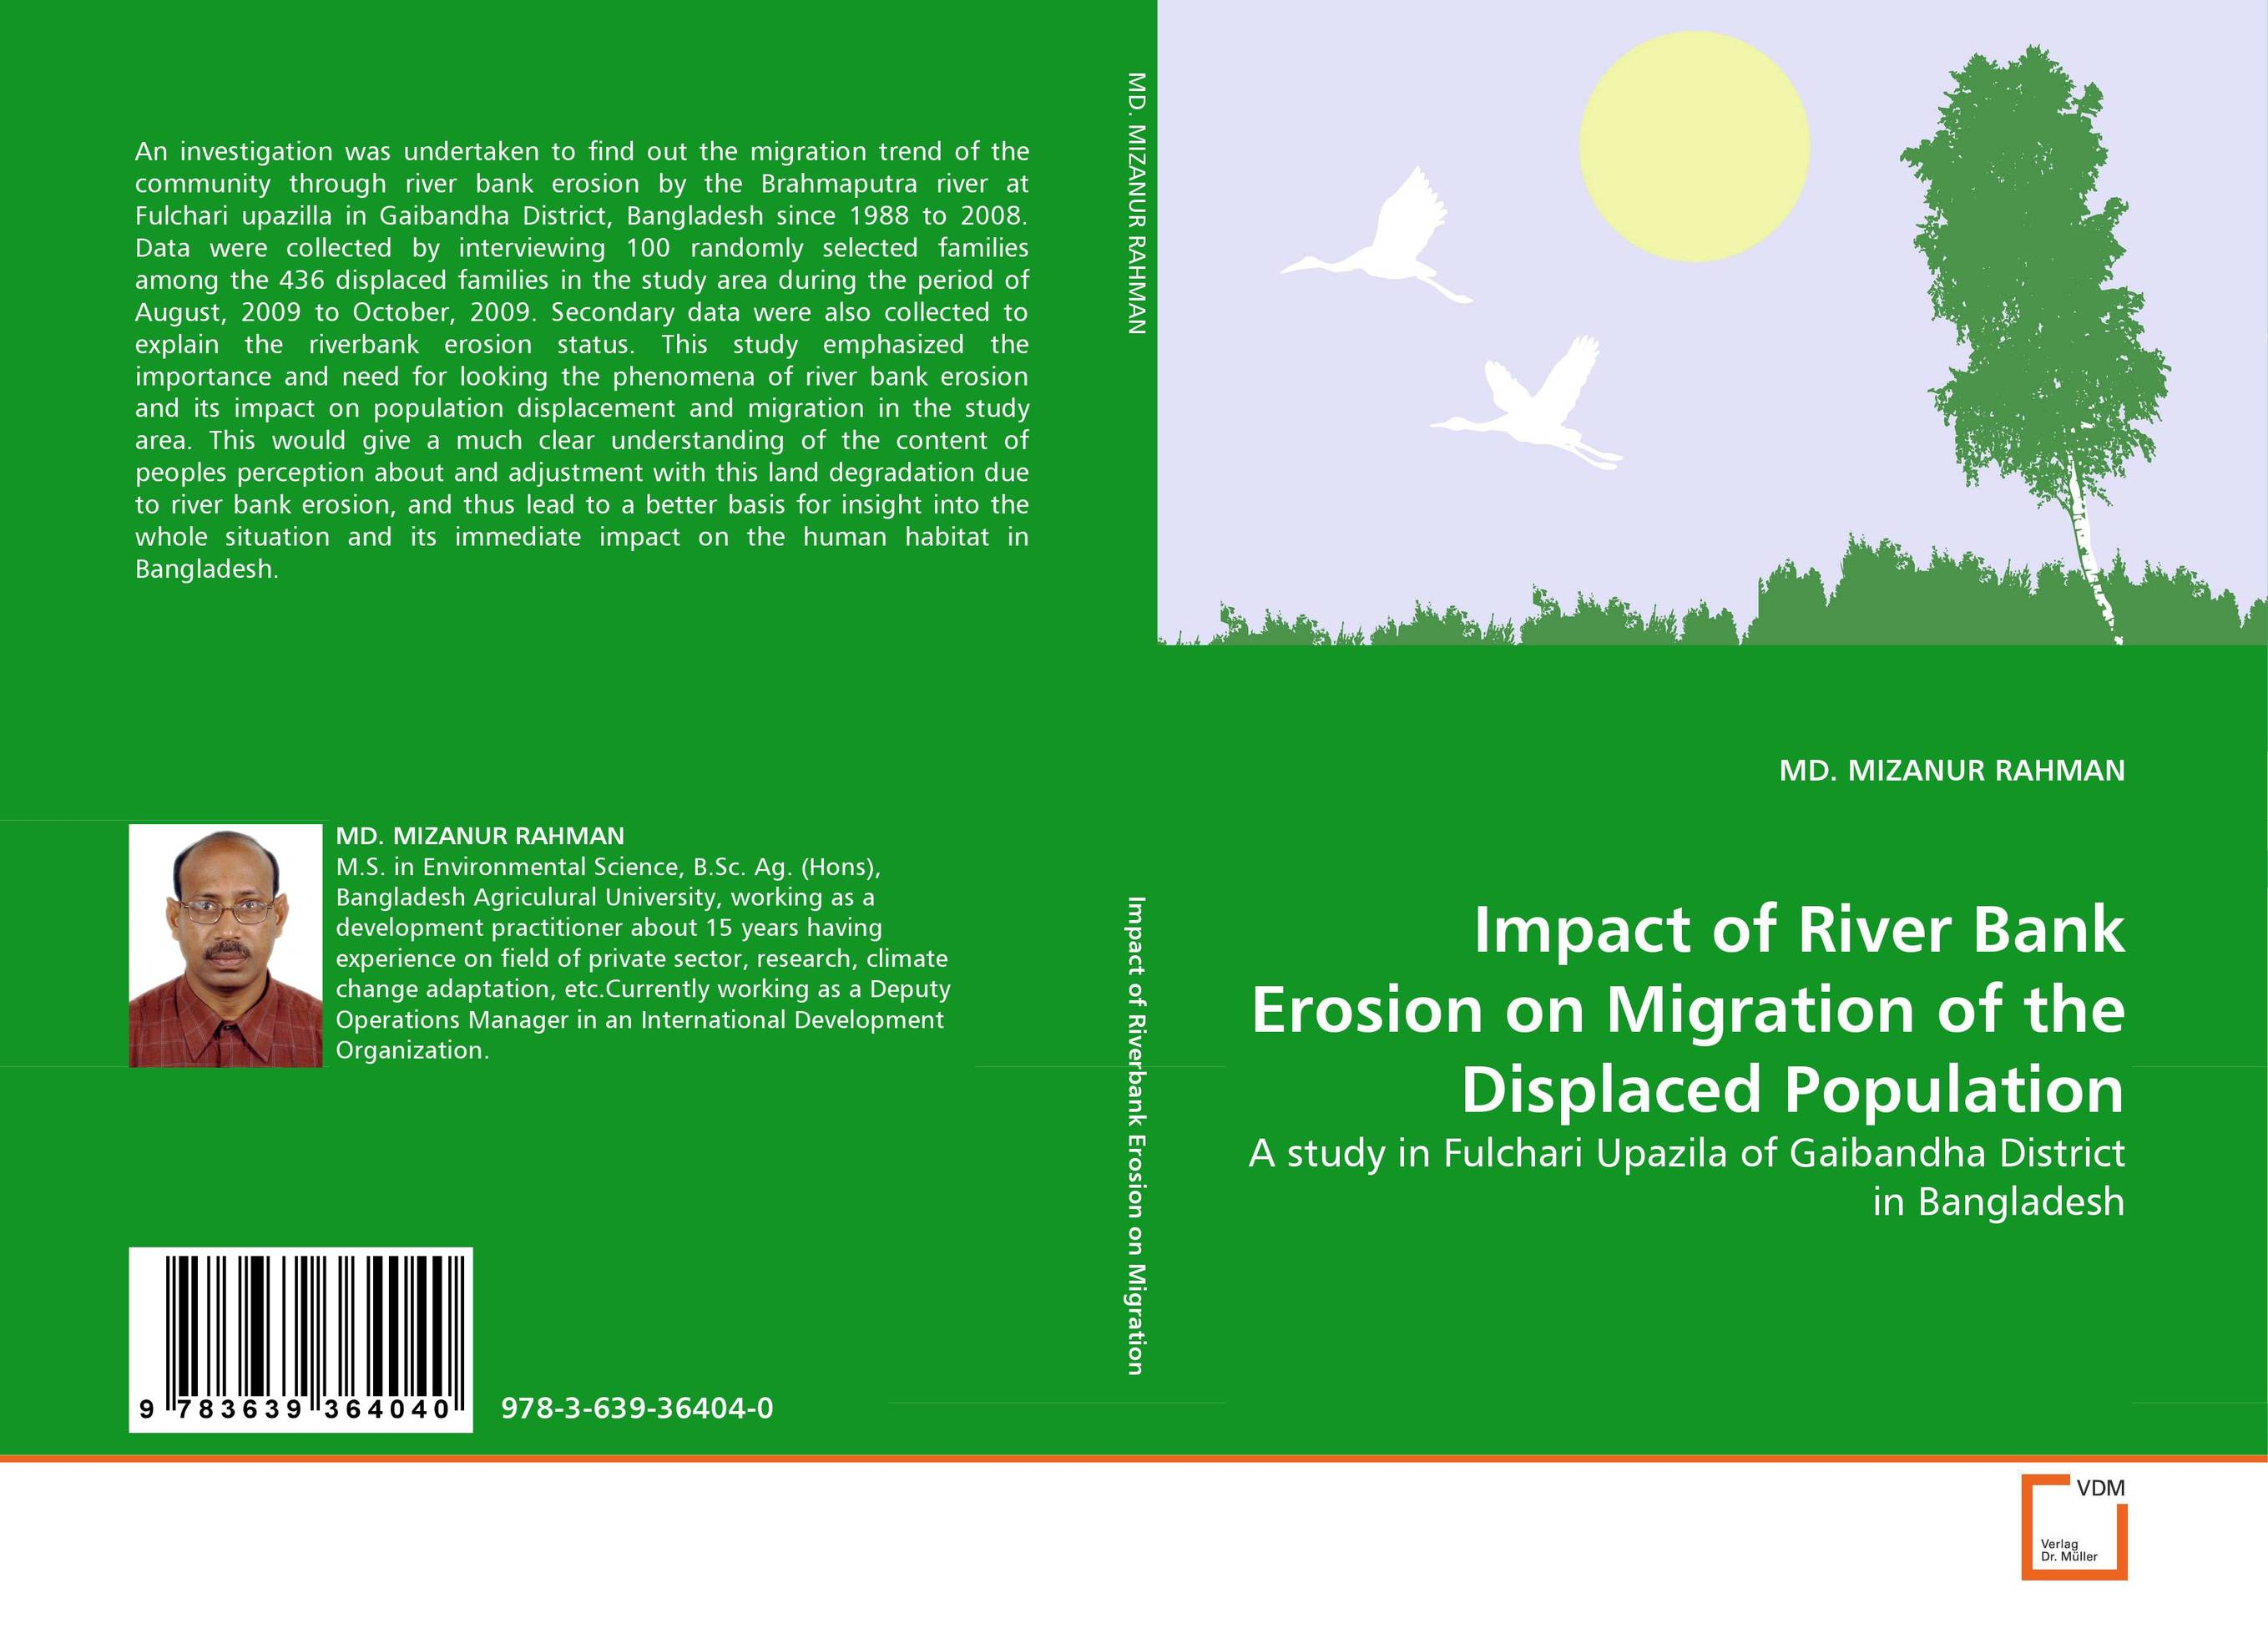 Impact of River Bank Erosion on Migration of the Displaced Population assessing the demand of river bank recreational facilities